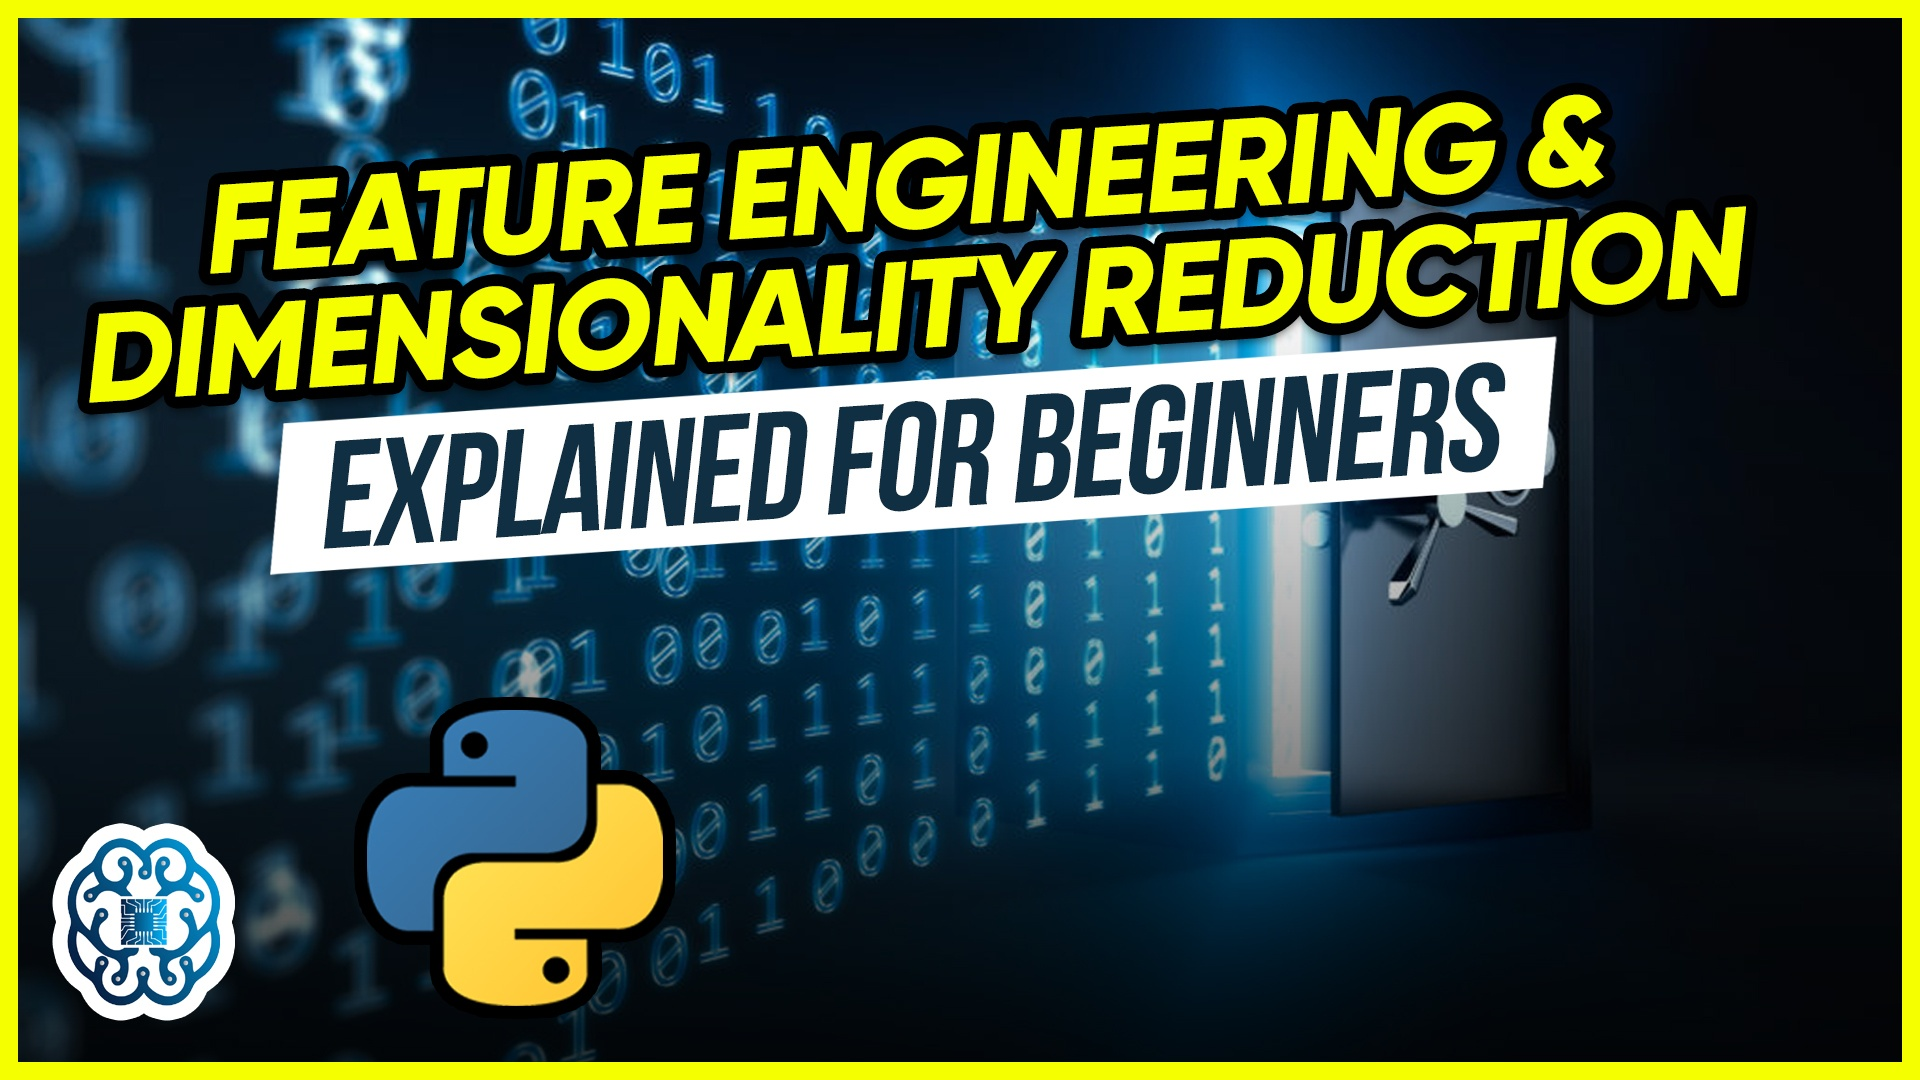 Feature Engineering and Dimensionality Reduction with Python